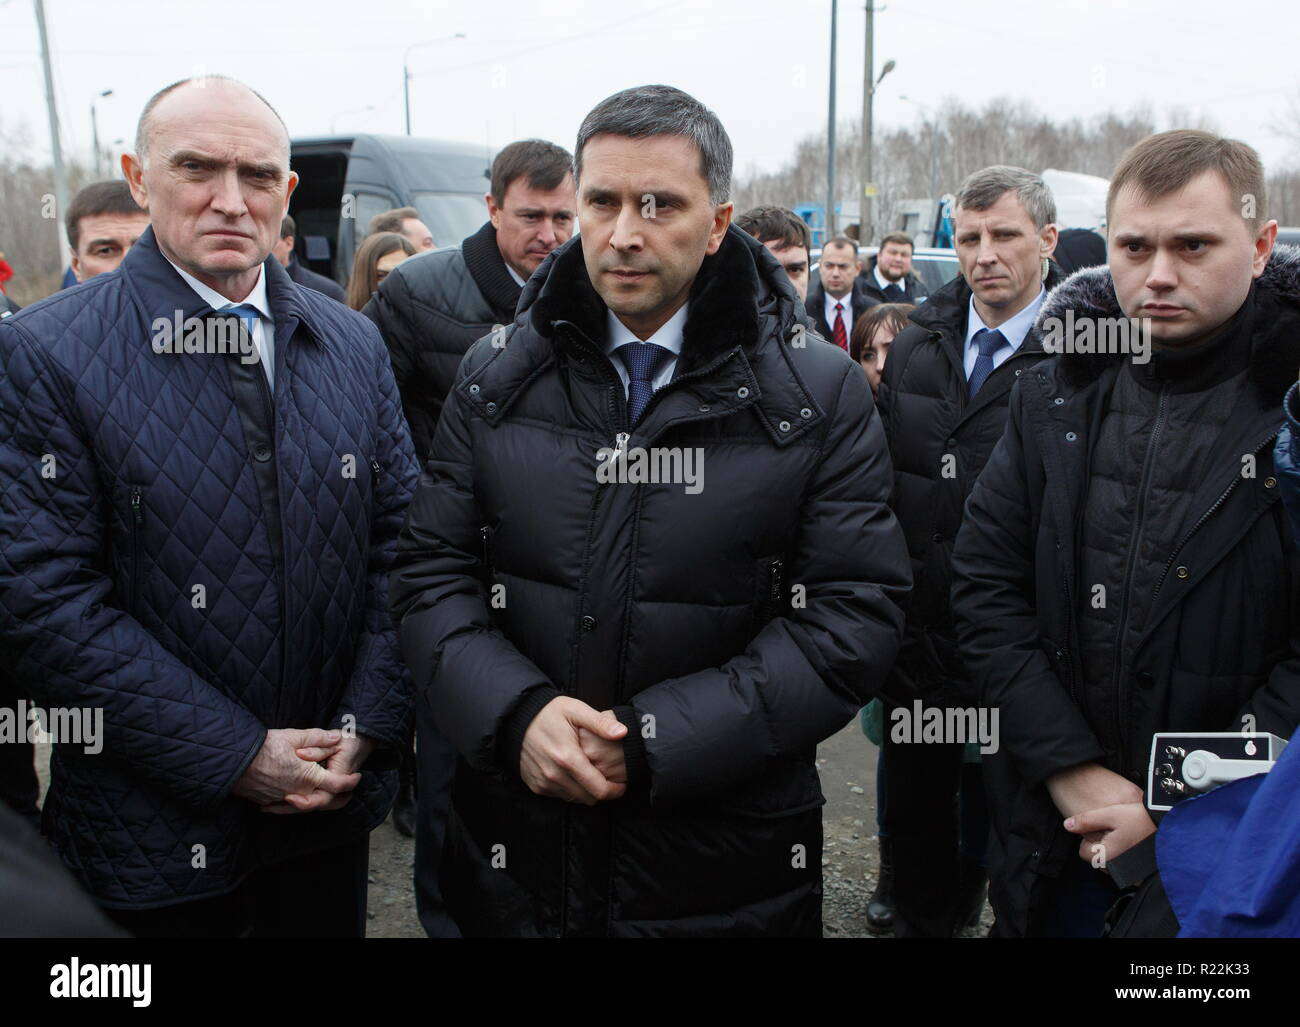 Chelyabinsk, Russia. 16th Nov, 2018. CHELYABINSK, RUSSIA - NOVEMBER 16, 2018: Chelyabinsk Region Governor Boris Dubrovsky (L) and Russia's Minister of Natural Resources and Environment, Dmitry Kobylkin (C), and the Director of the Moya Planeta charity environmental fund Vitaly Bezrukov (R front) visit Chelyabinsk Coke and Chemical Products Plant (Mechel Coke) owned by Mechel, a major producer of metallurgical coal. Nail Fattakhov/TASS Credit: ITAR-TASS News Agency/Alamy Live News - Stock Image